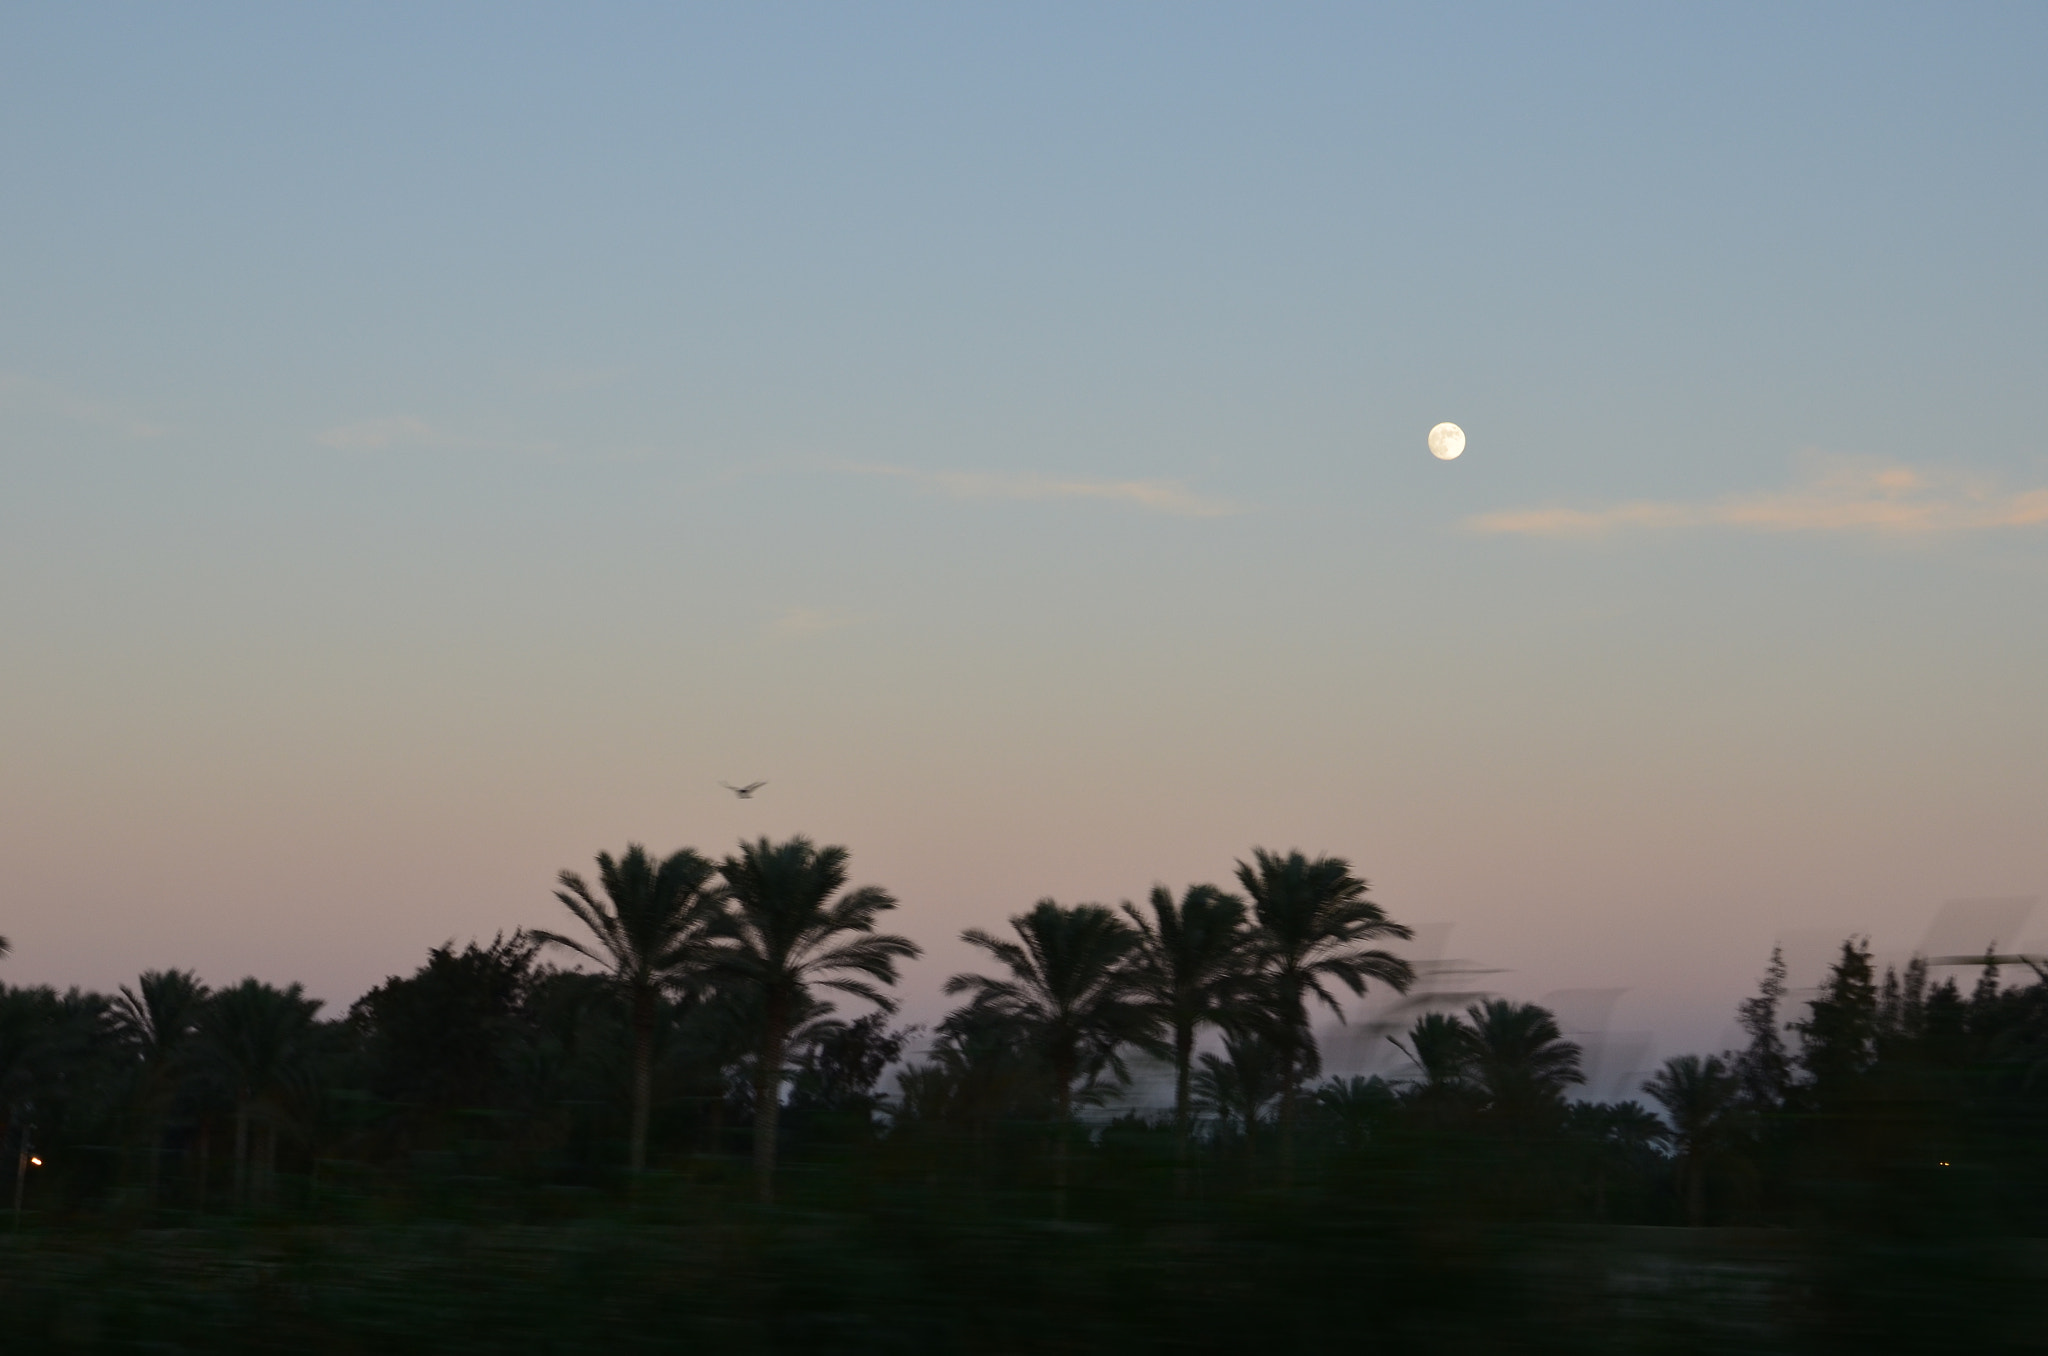 Photograph The Moon at Sunset by Zeyad Sakr on 500px